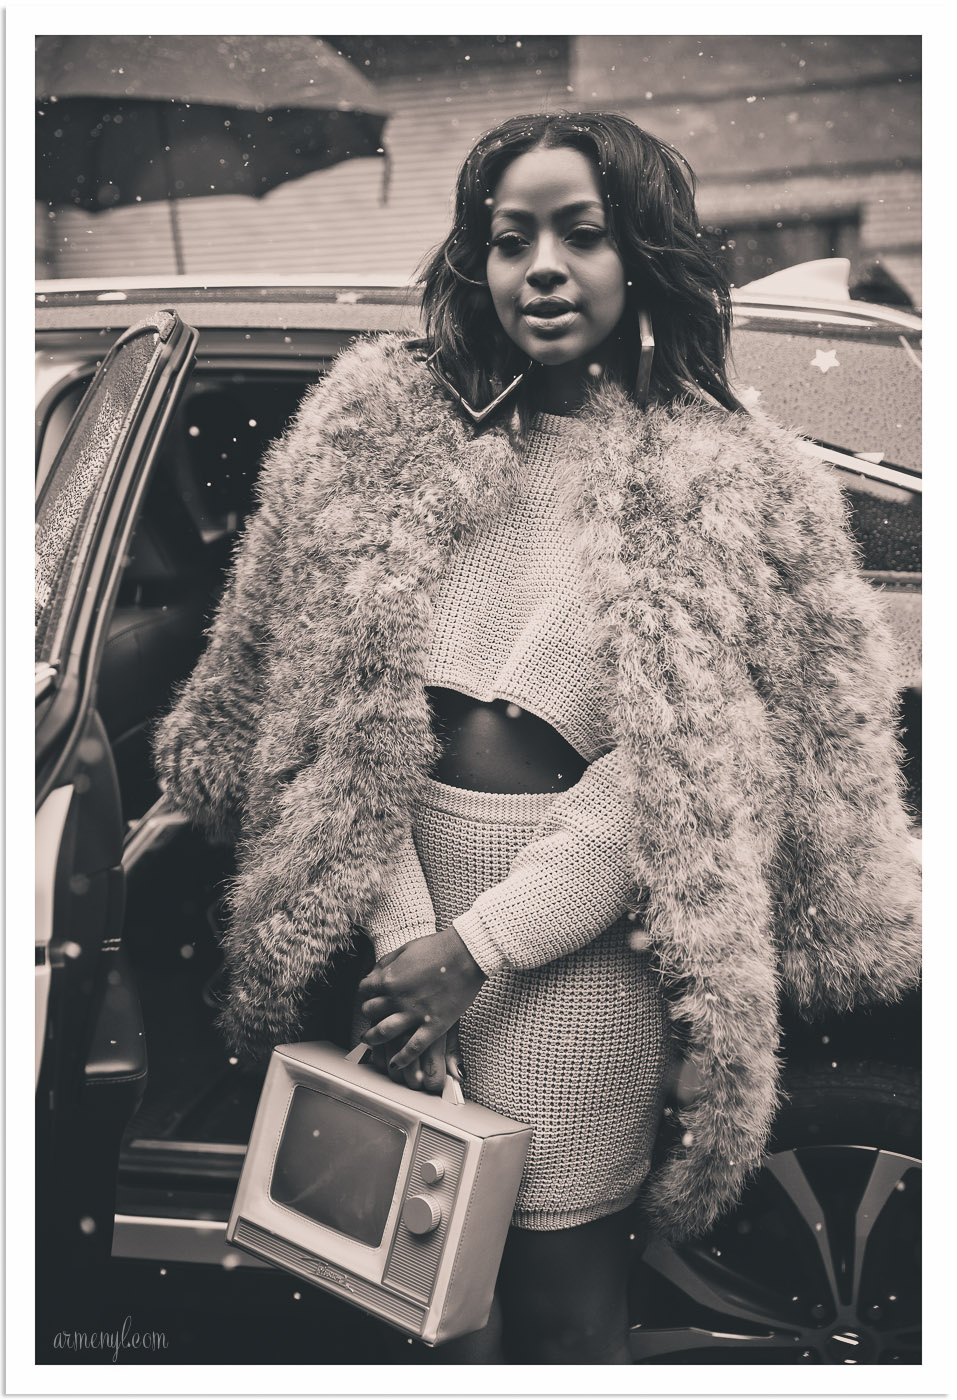 Roc Nation singer Justine Skye at New York Fashion Week after Jeremy Scott show photographed by Armenyl.com